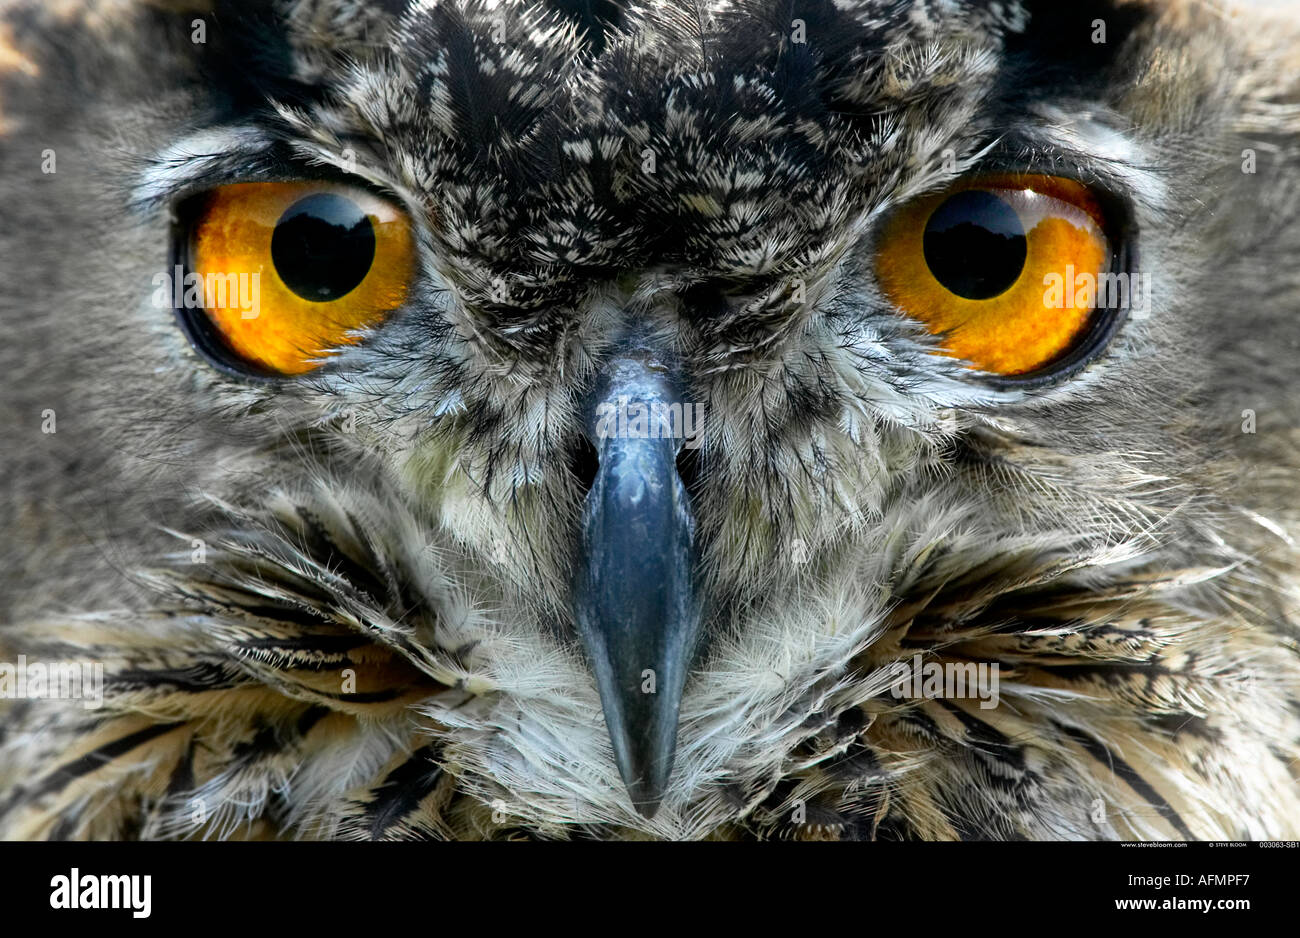 Eagle Owl Europe Photo Stock